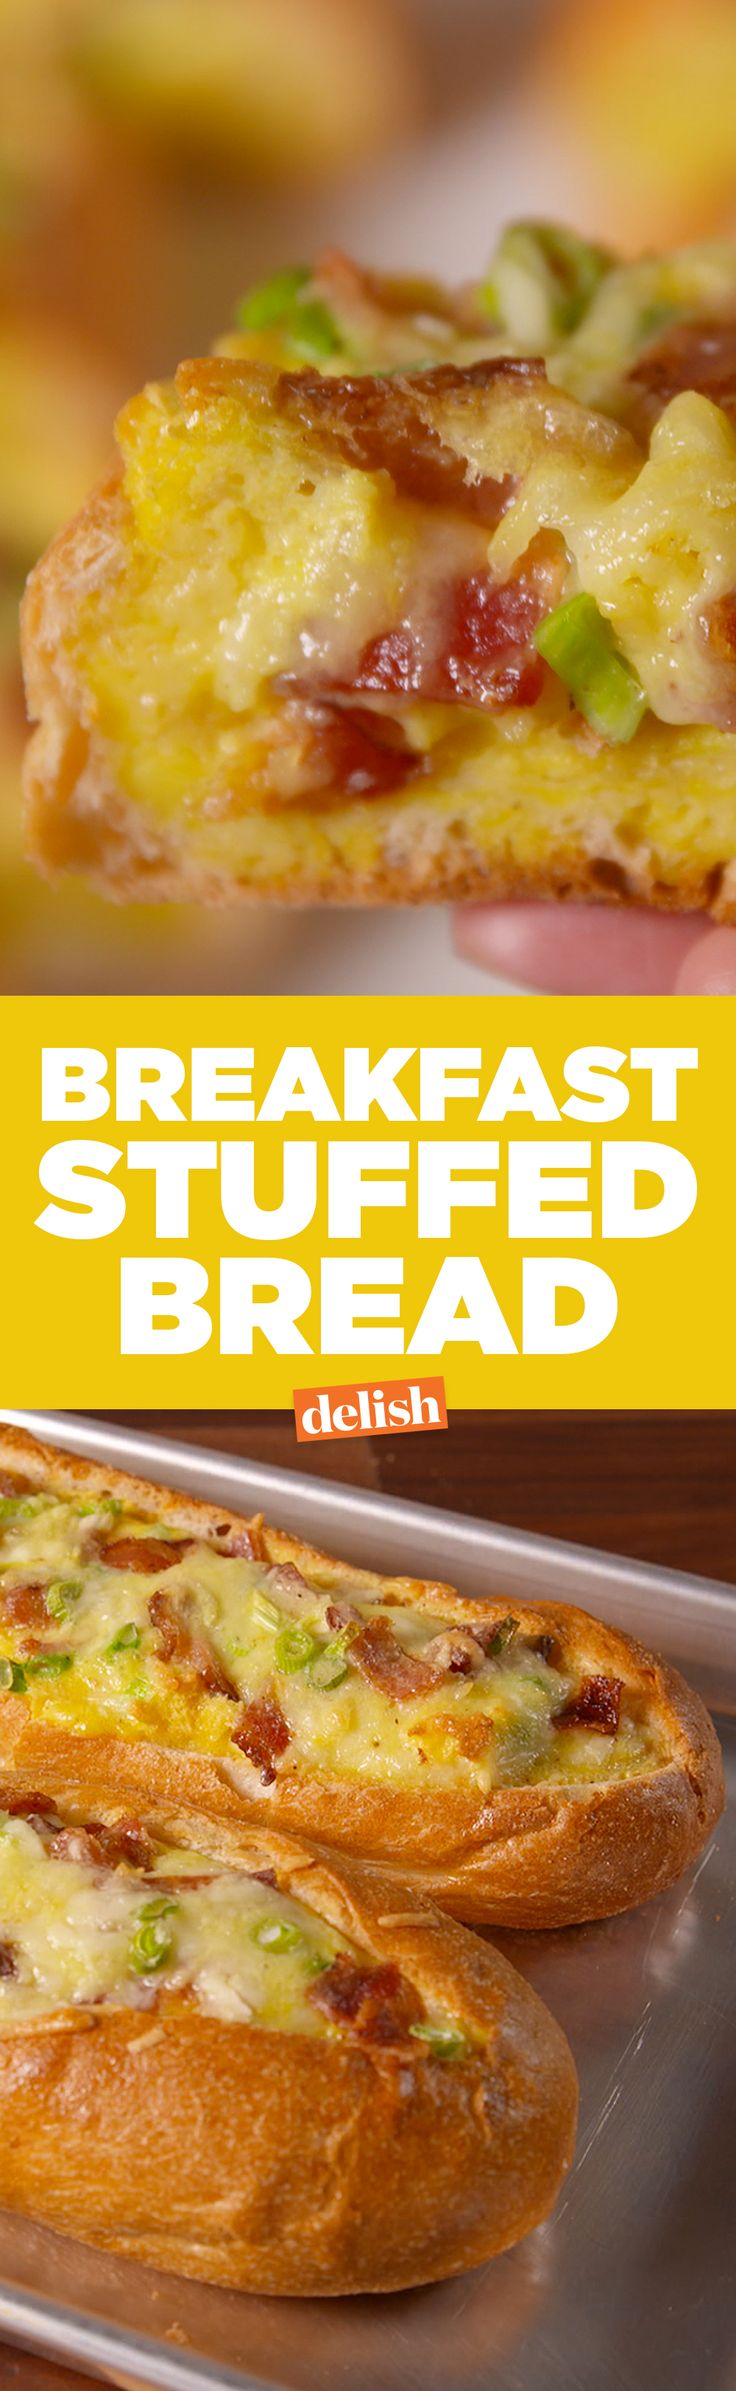 No fancy brunch compares to this Breakfast Stuffed Bread. Get the recipe on Delish.com.